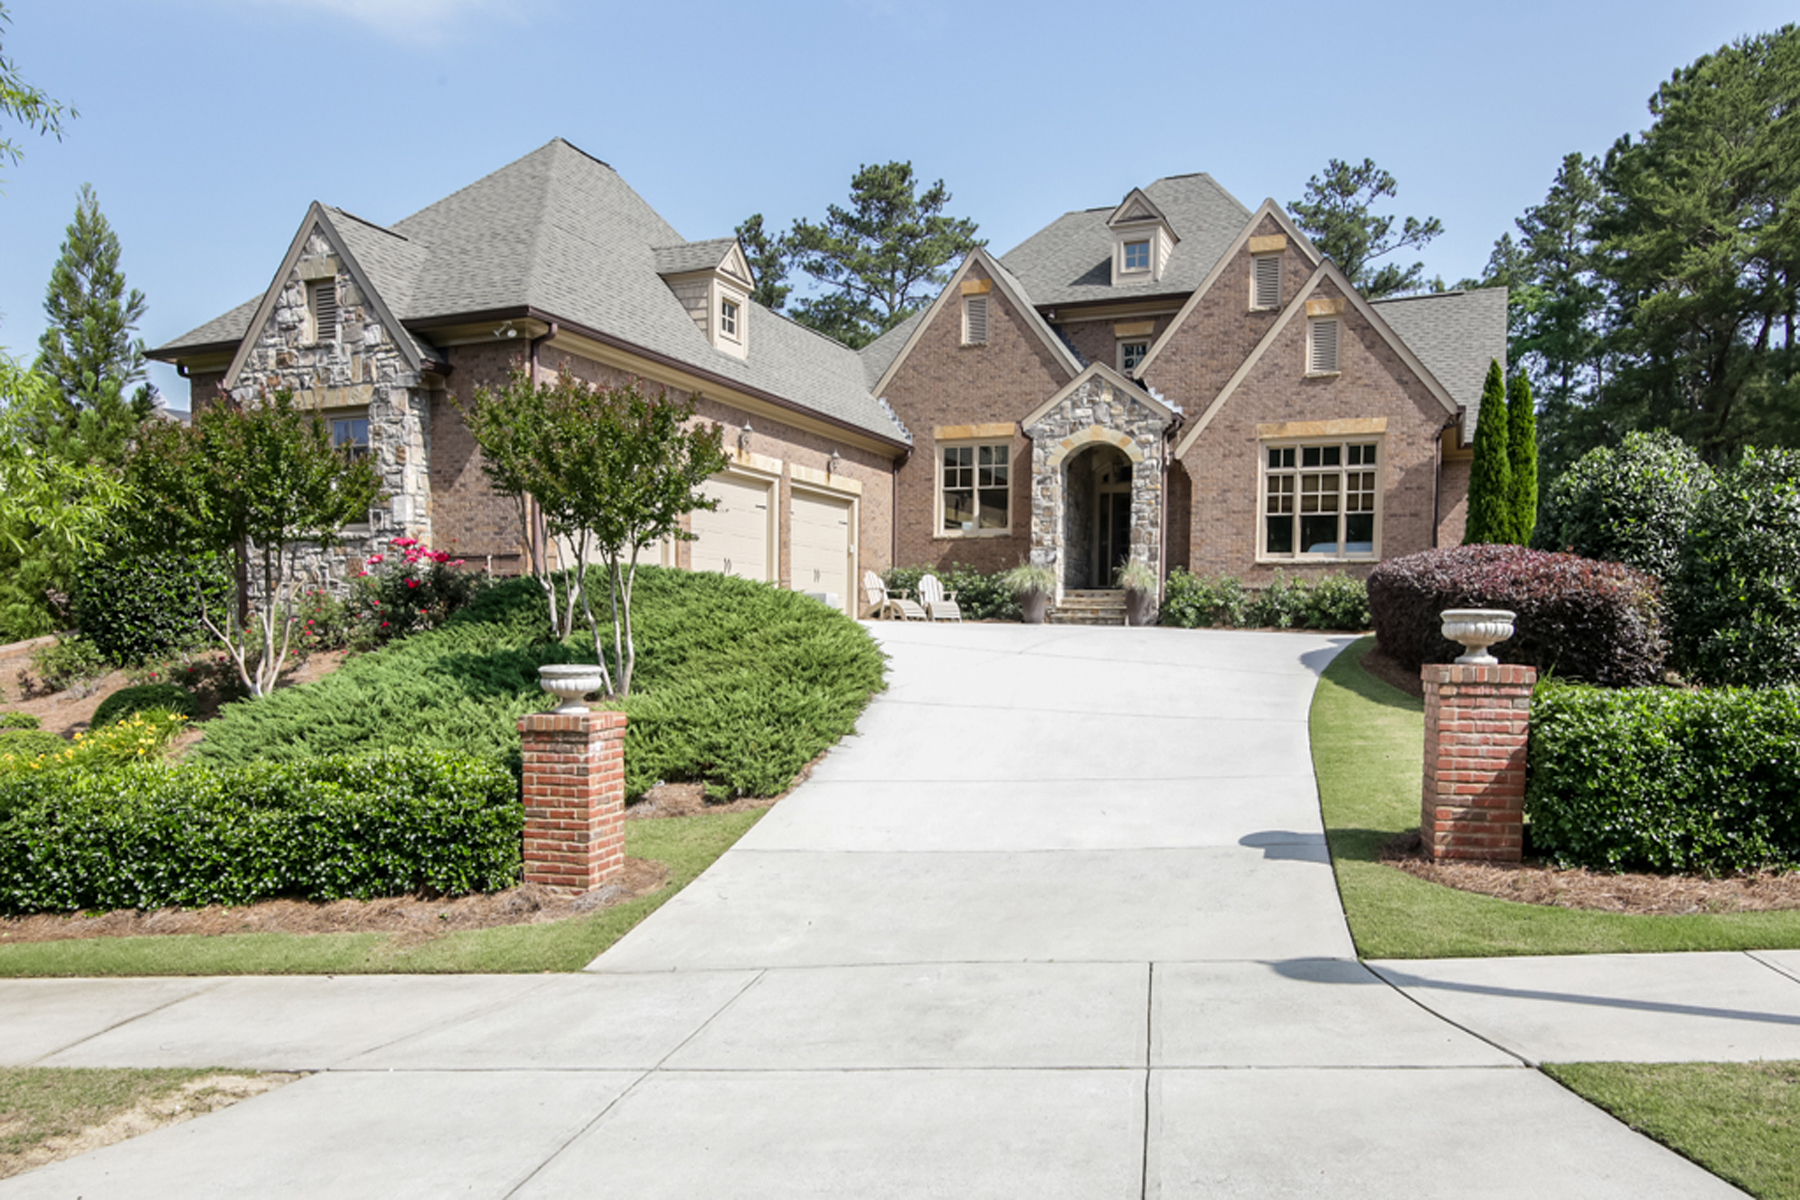 Additional photo for property listing at Immaculate With Master On Main 6062 Tattnall Overlook Acworth, Γεωργια 30101 Ηνωμενεσ Πολιτειεσ